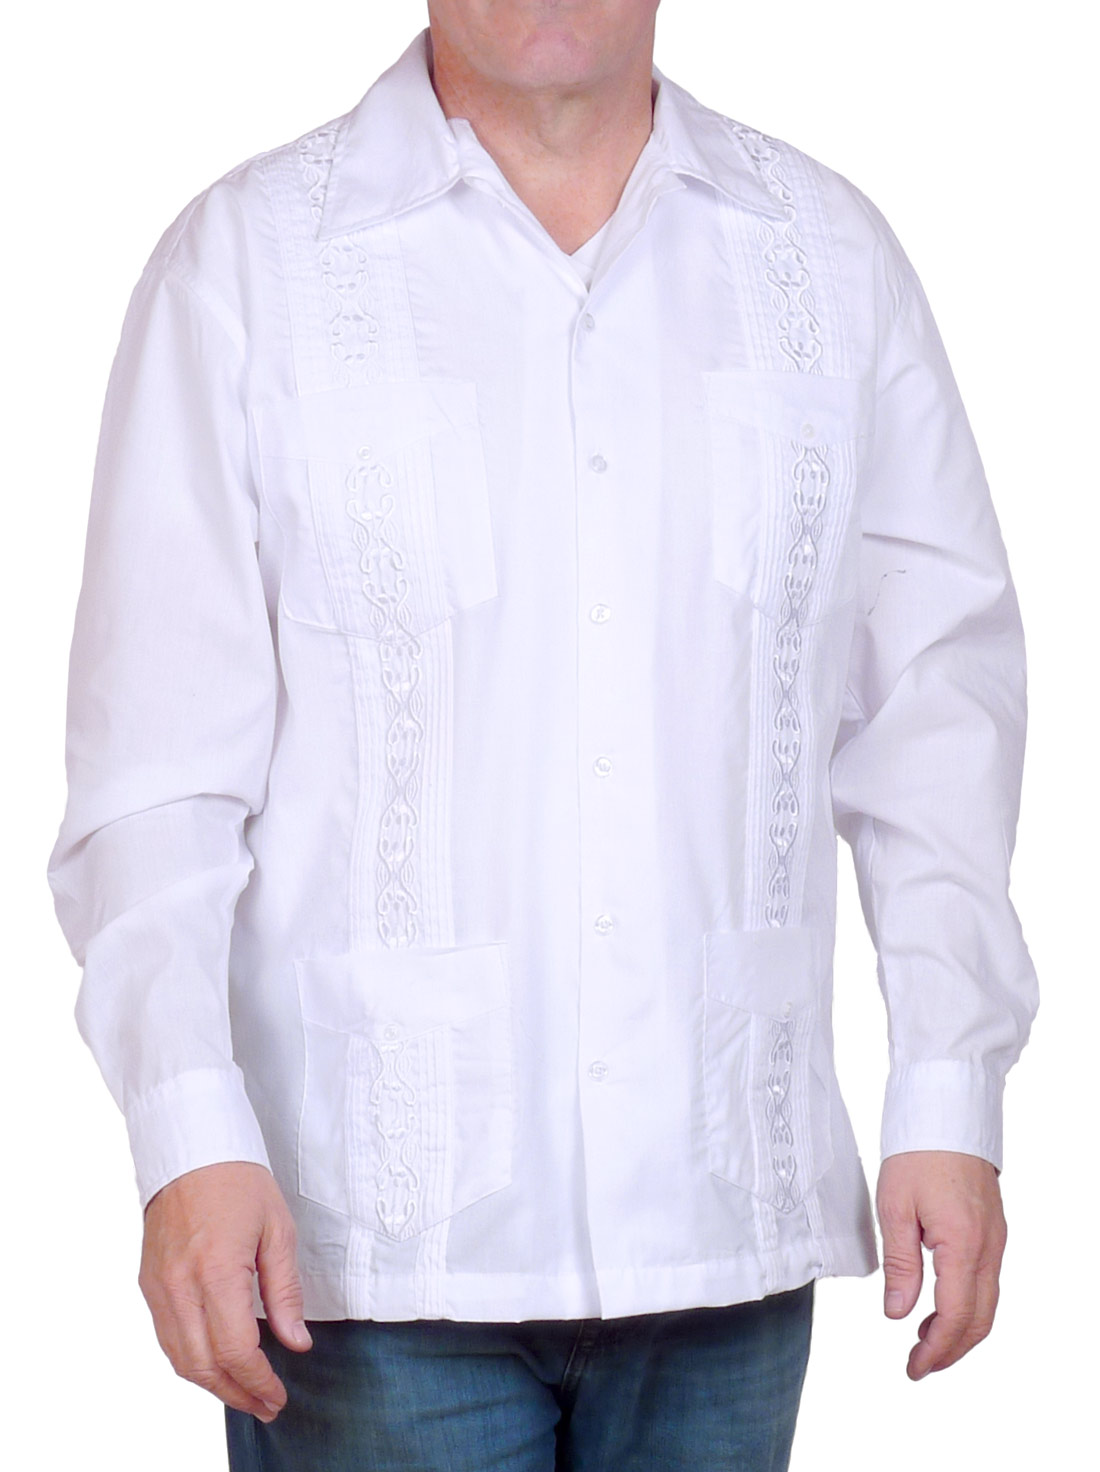 Image of White Embroidered Long Sleeve